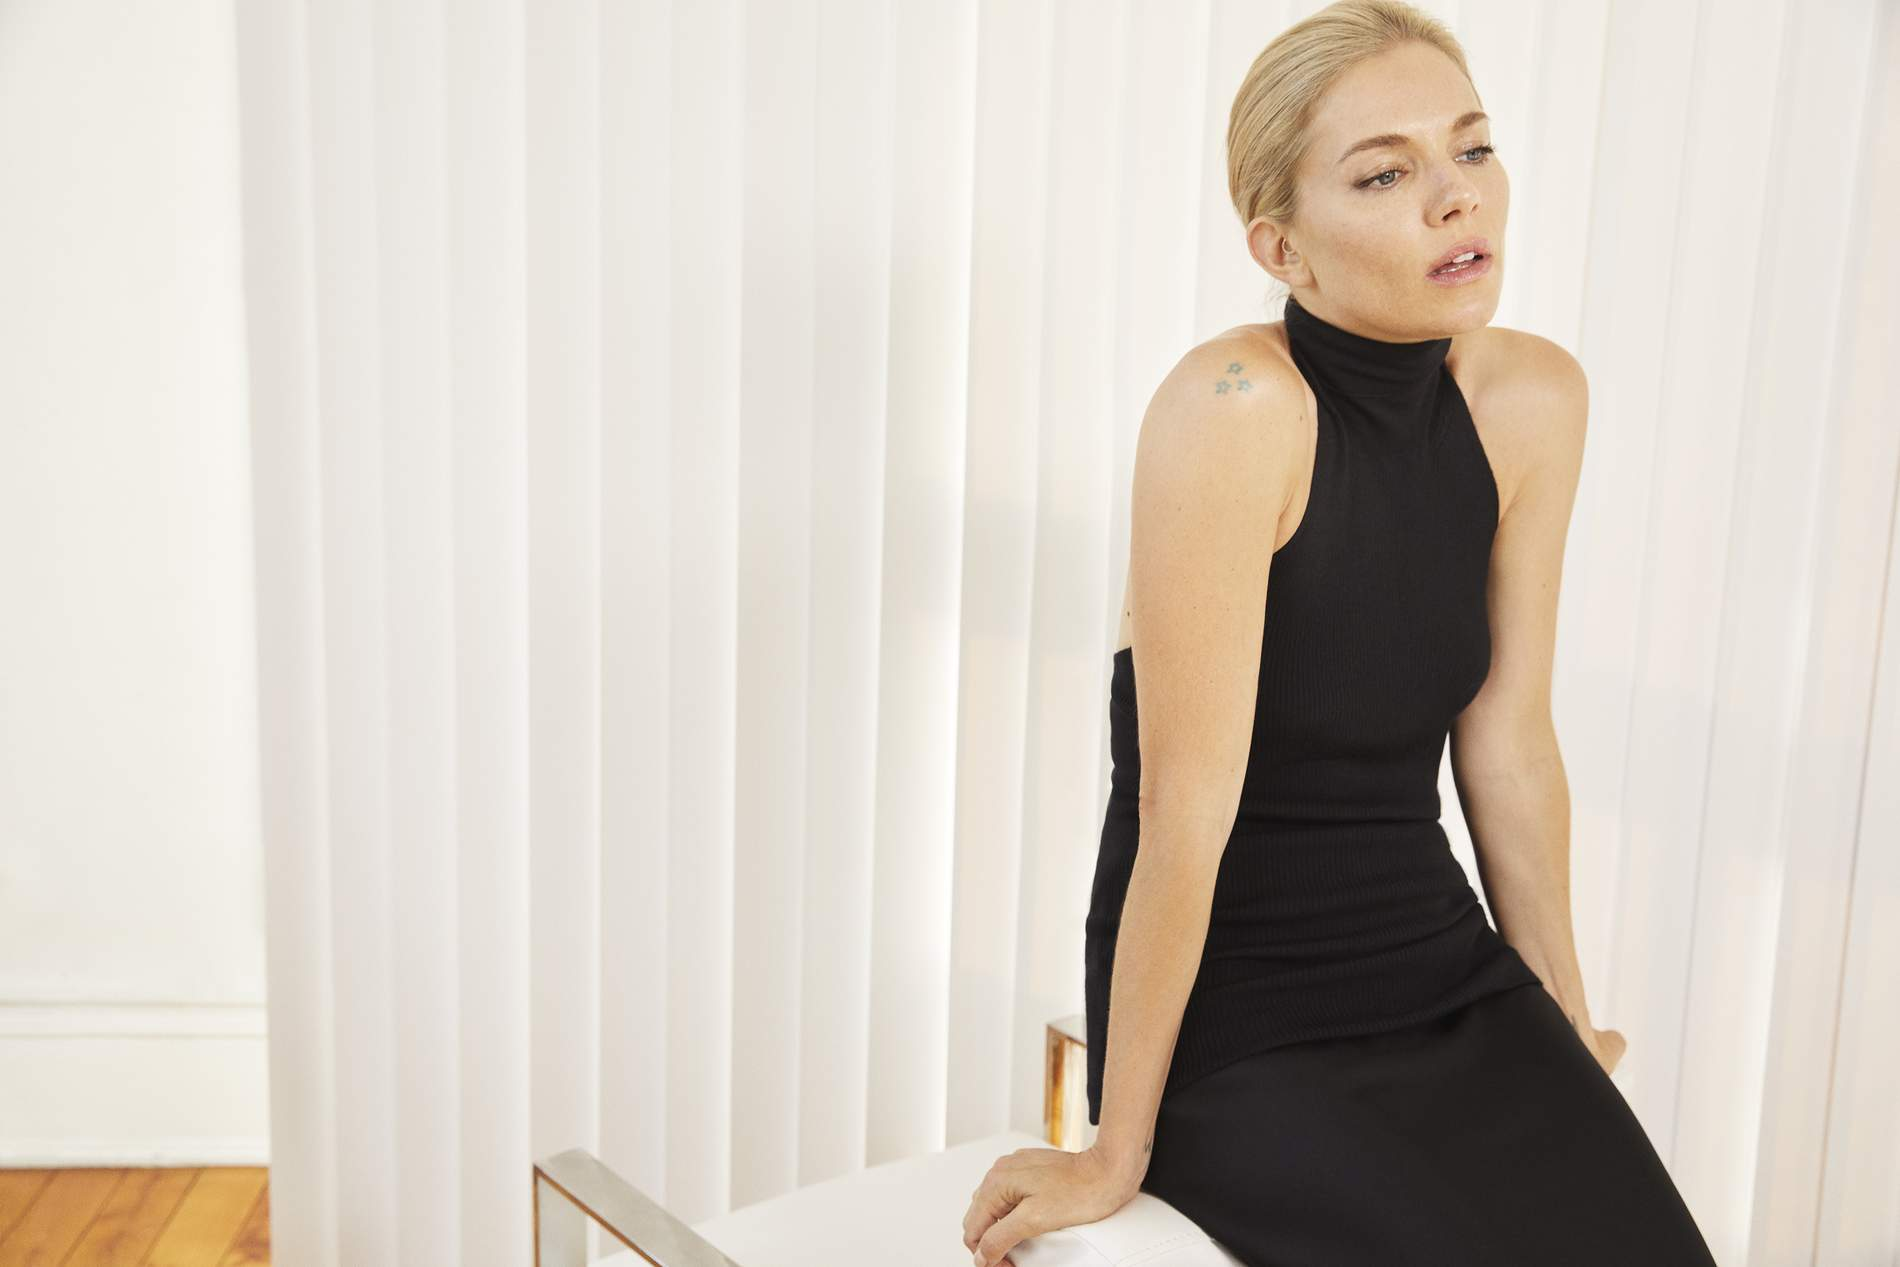 Le Meilleur Sienna Miller On Why She S Having The Time Of Her Life Ce Mois Ci